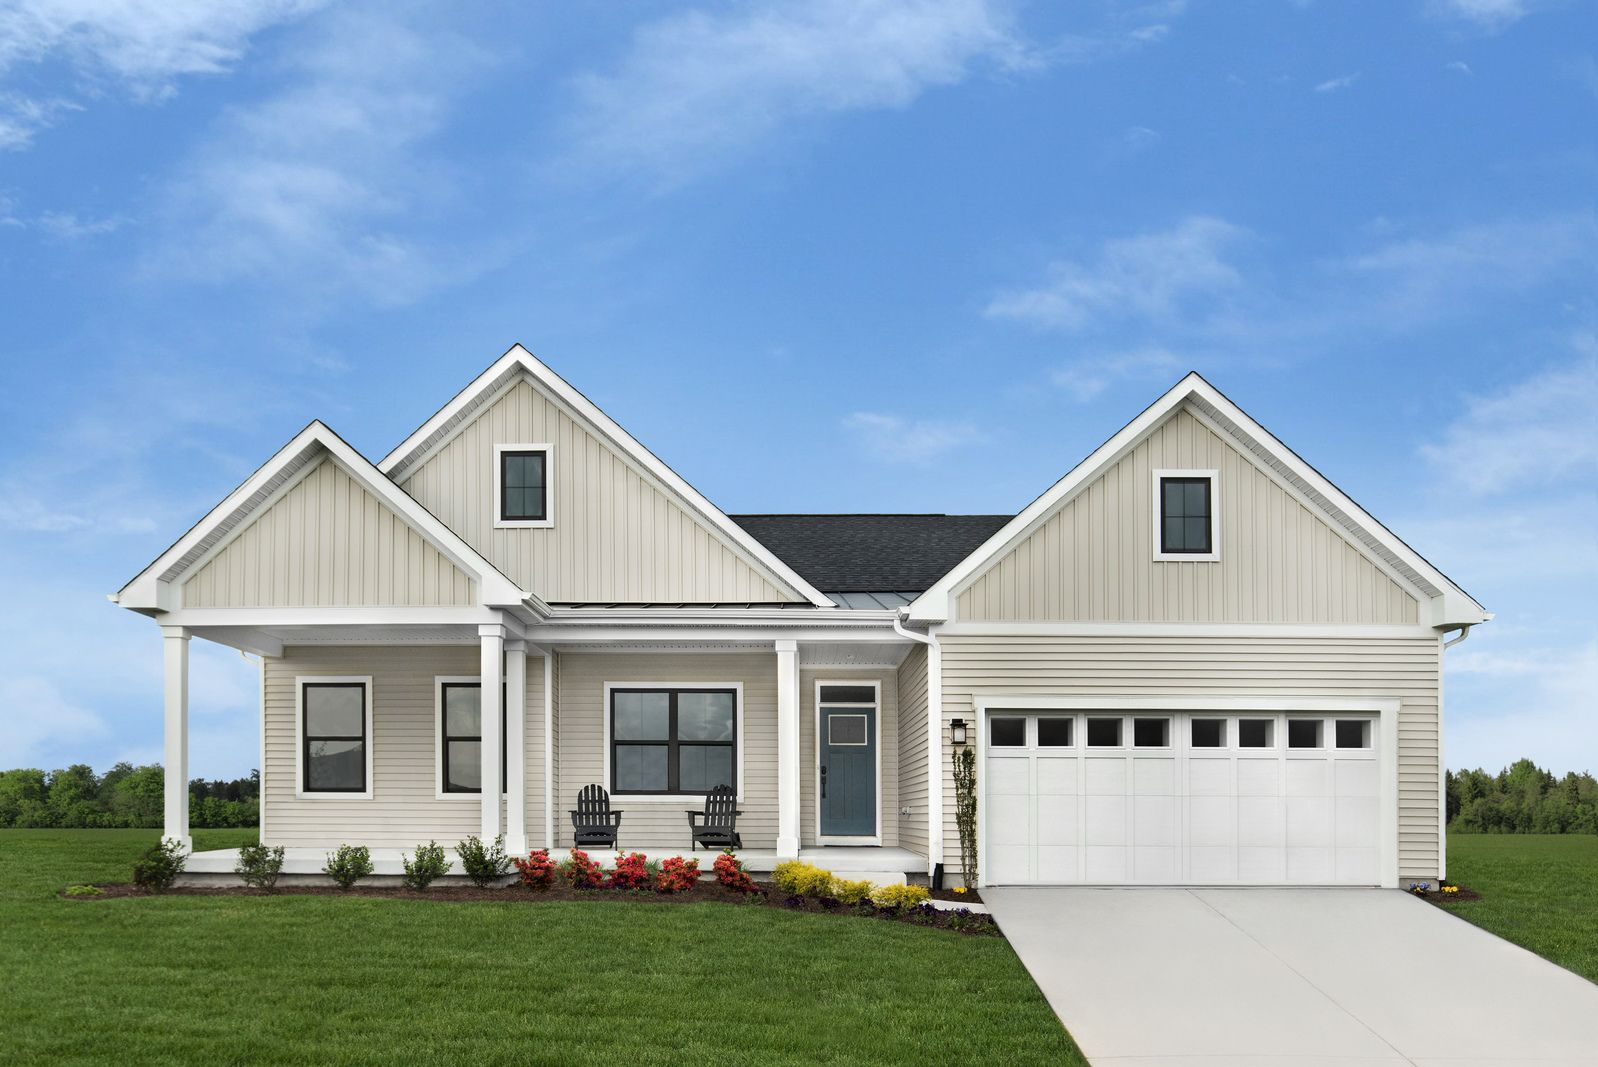 Welcome to Atlantic Lakes:Lowest priced new single-family homes near Fenwick & OCMD. Lake-oriented community with farmhouse designs, planned amenities & first-floor living.Click here to schedule an appointment!